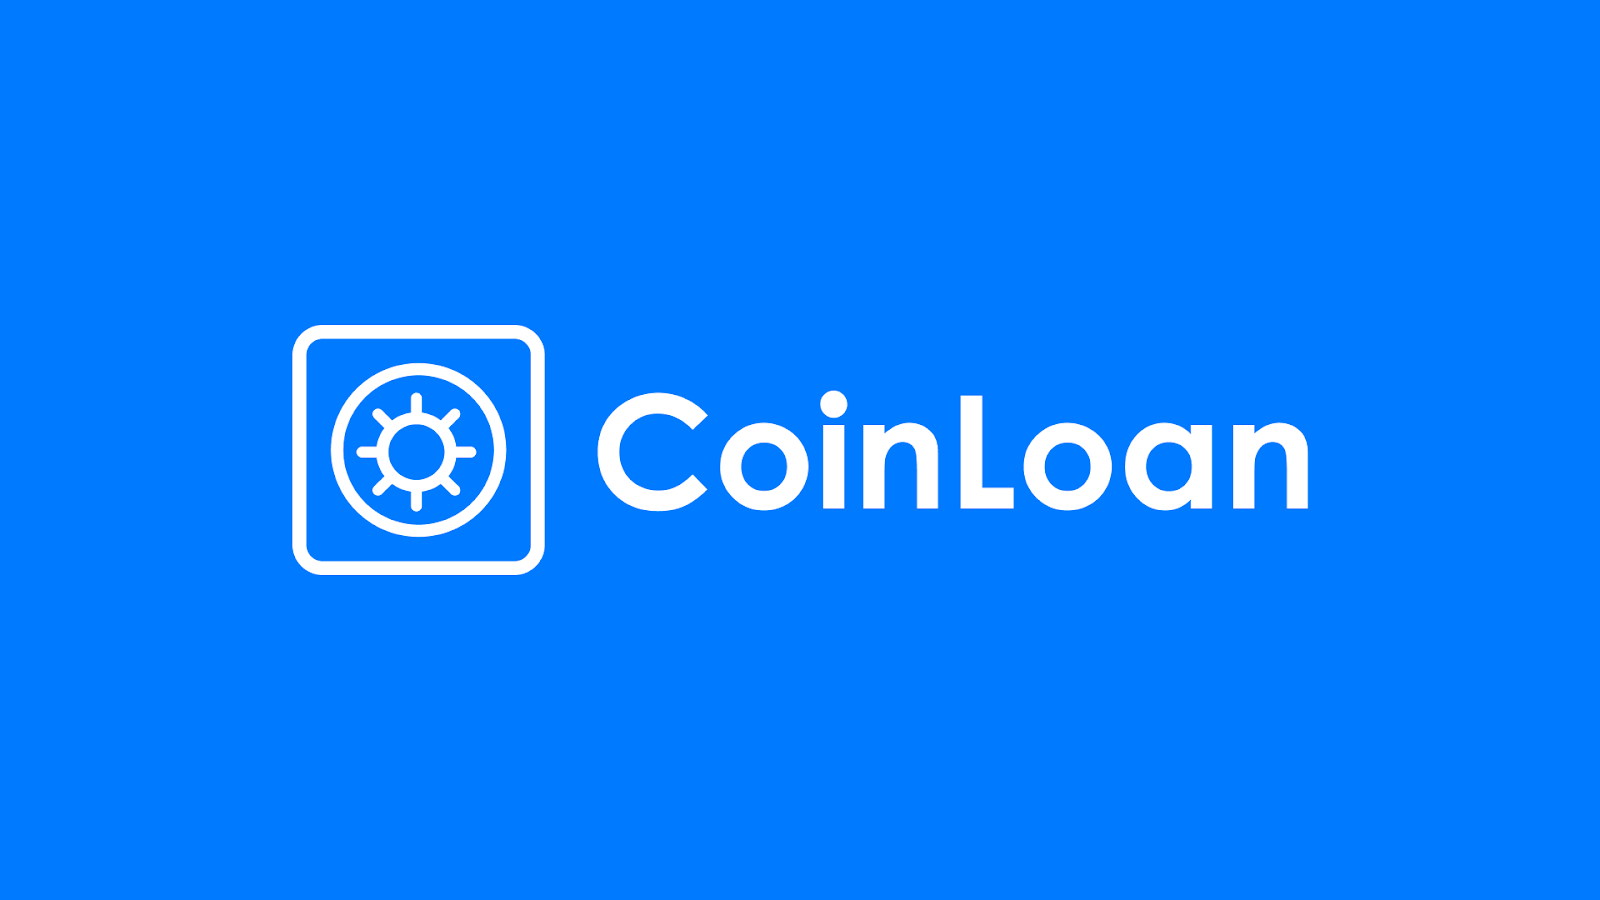 CoinLoan offers crypto interest accounts and crypto-backed loans in Bitcoin